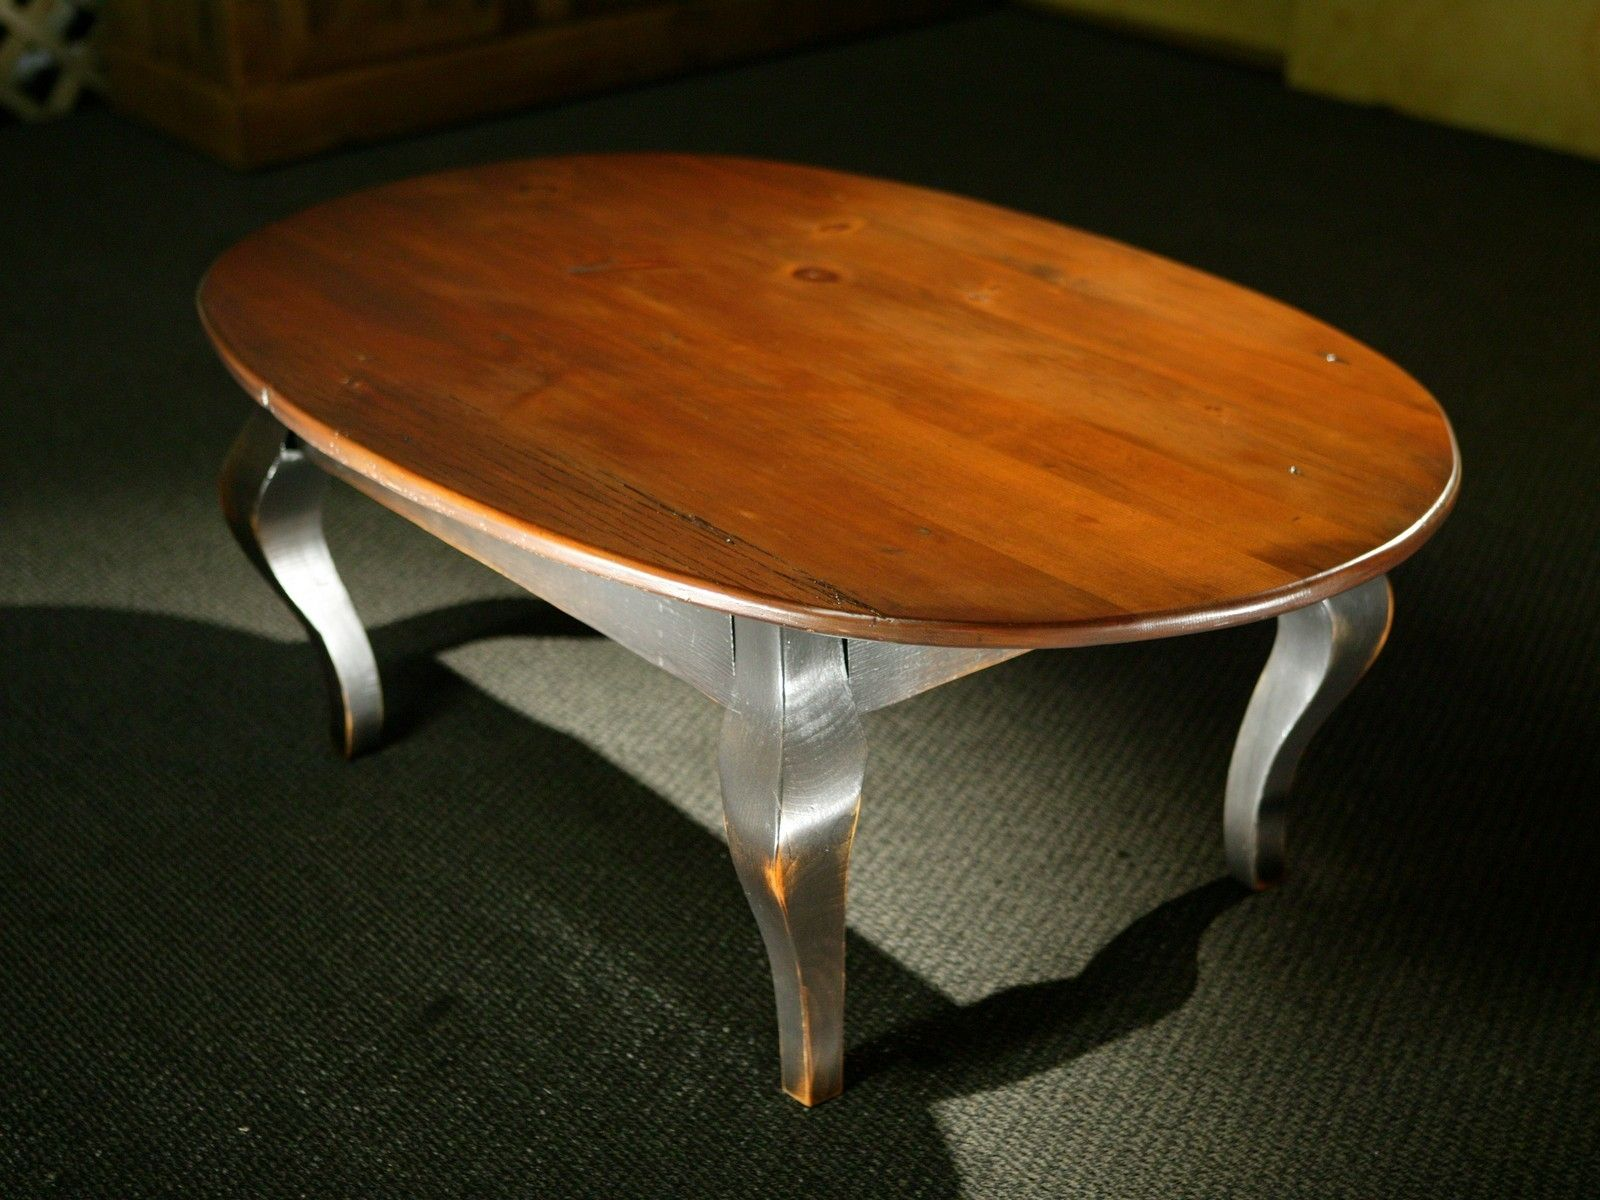 Hand Crafted Oval Wood Coffee Table With Black French Legs By Ecustomfinishes Reclaimed Wood